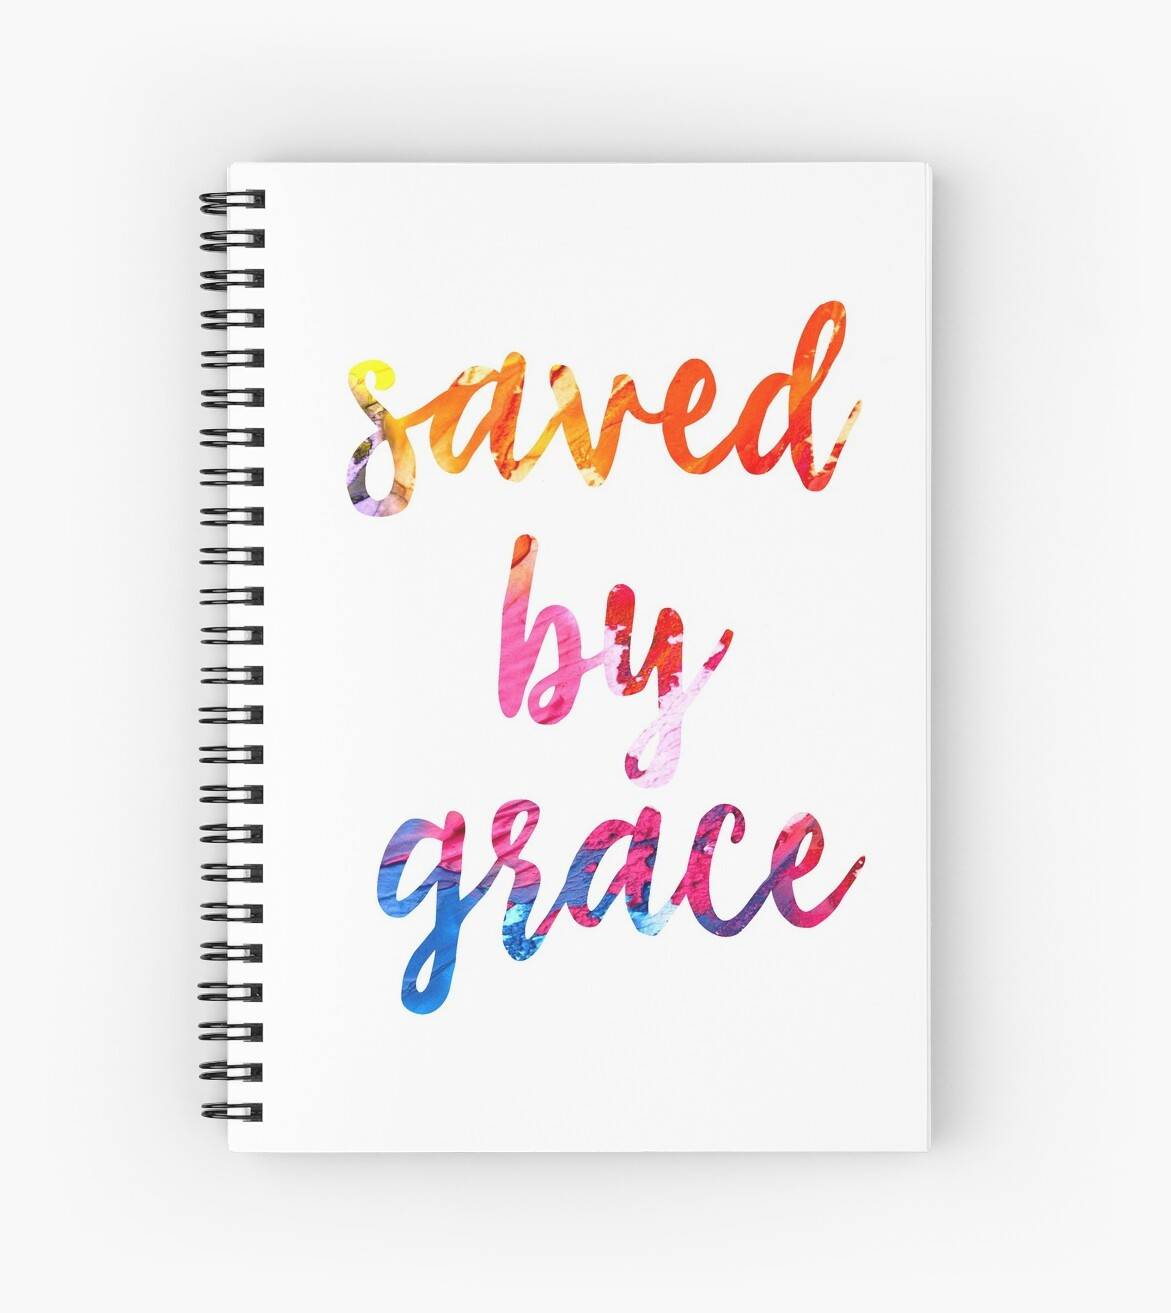 Quotes About Arte Saved By Grace Christian Quotes Arte Colorido De La Acuarela Cuaderno De Espiral By Christianstore